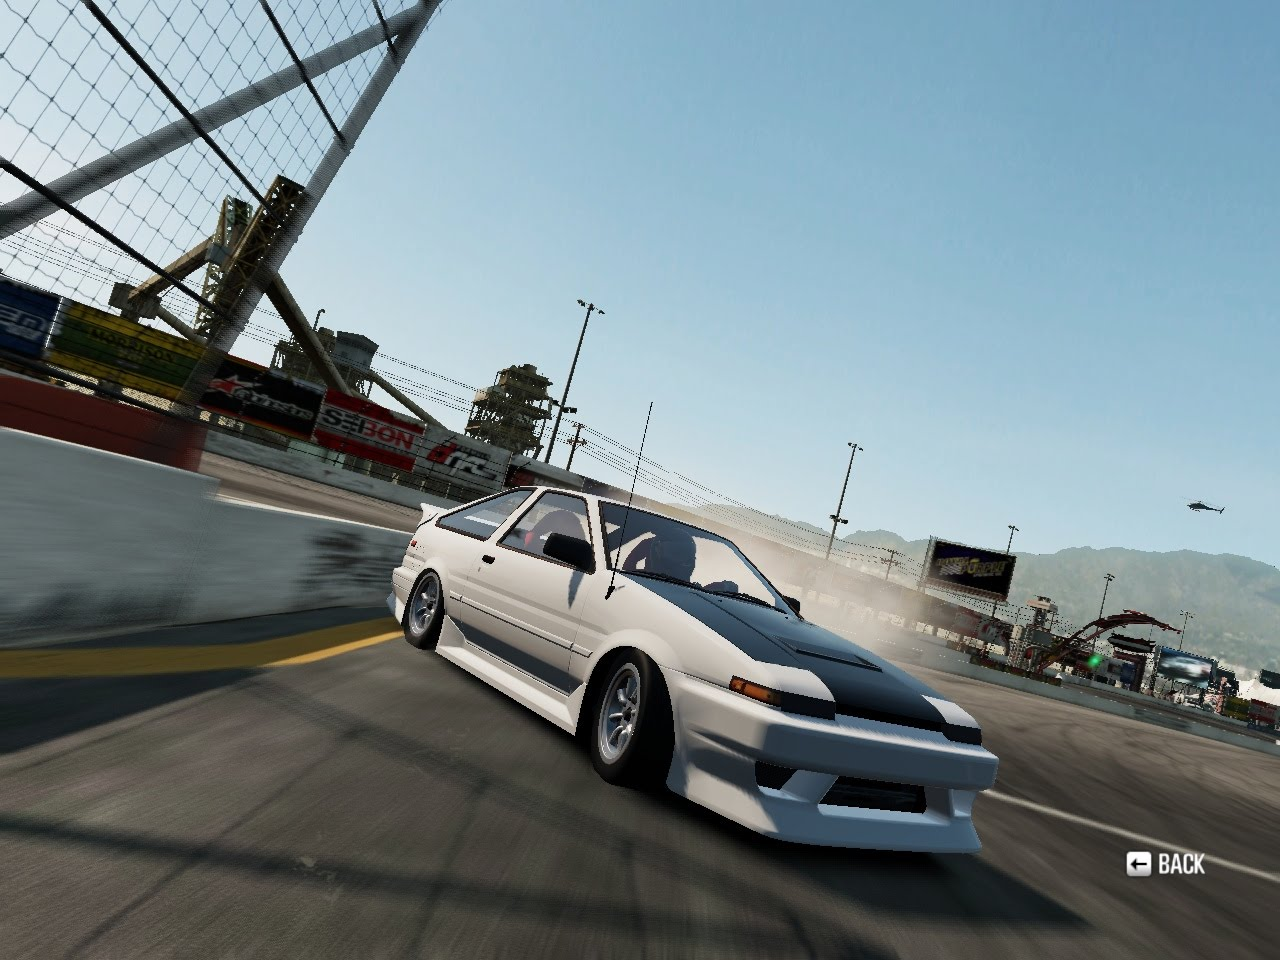 NFS Shift Drift Cars http://yazzygtamods.blogspot.com/2011/04/nfs-shift-2-unleashed-pics.html